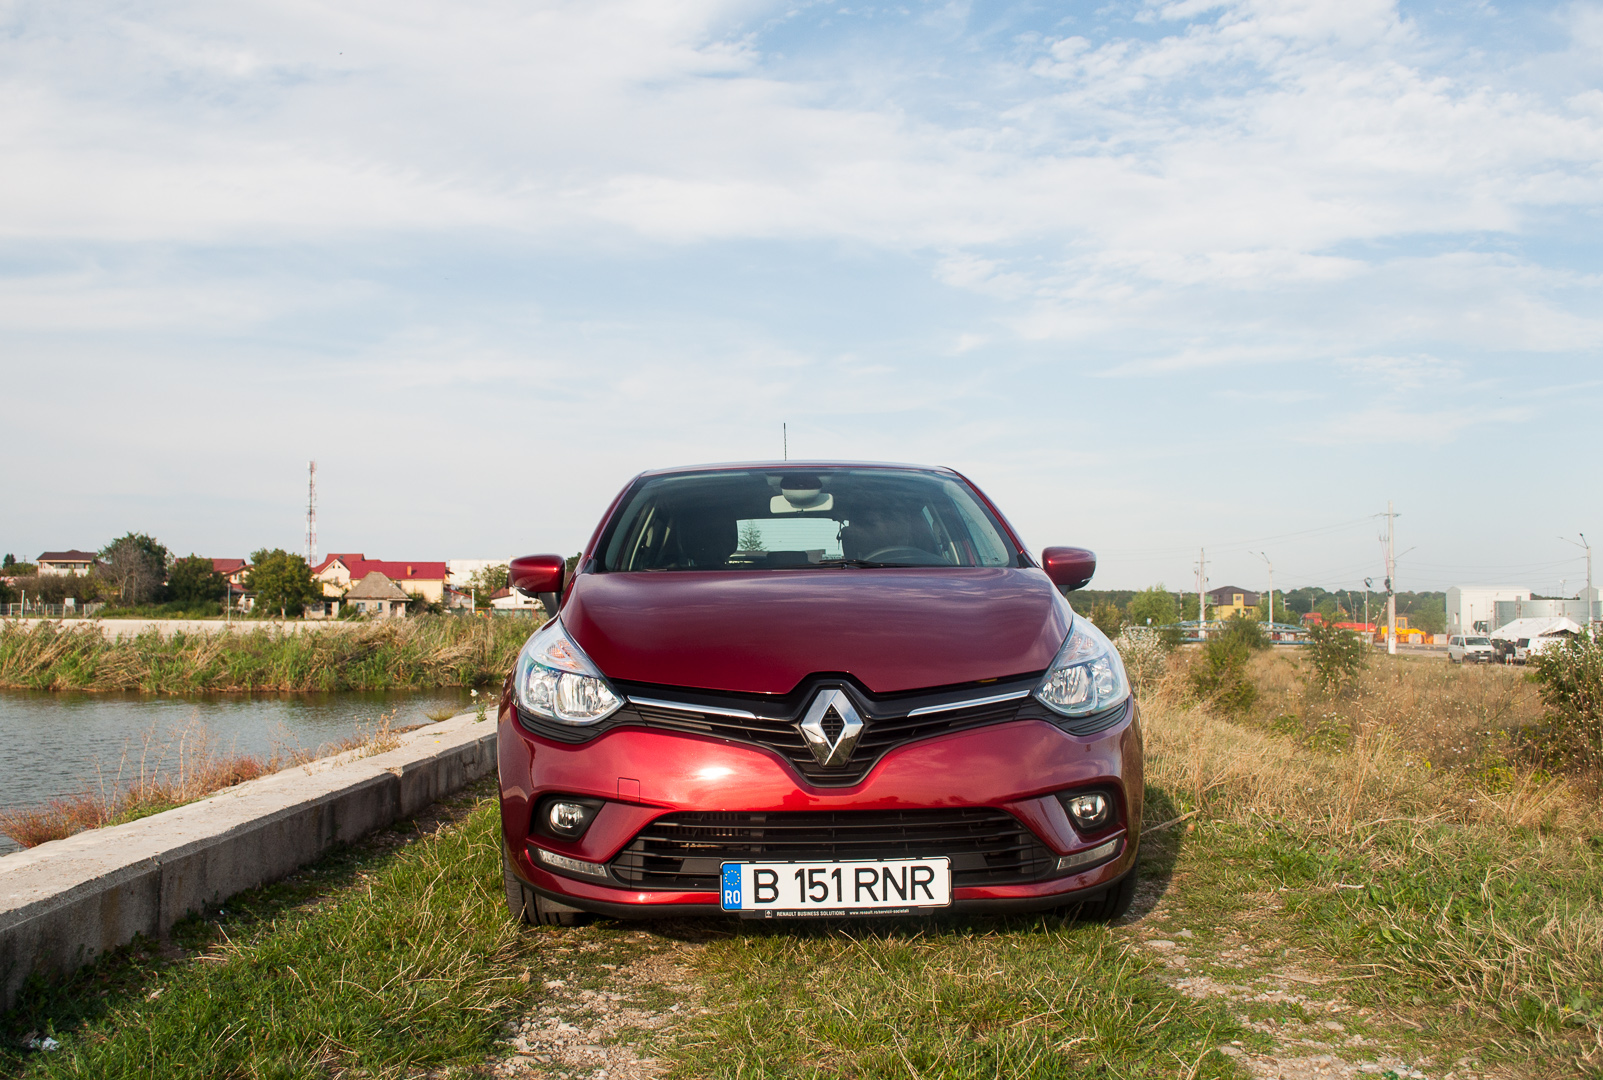 Drive test Renault Clio 1.5 Diesel Turbo (Energy dCi) 90CP